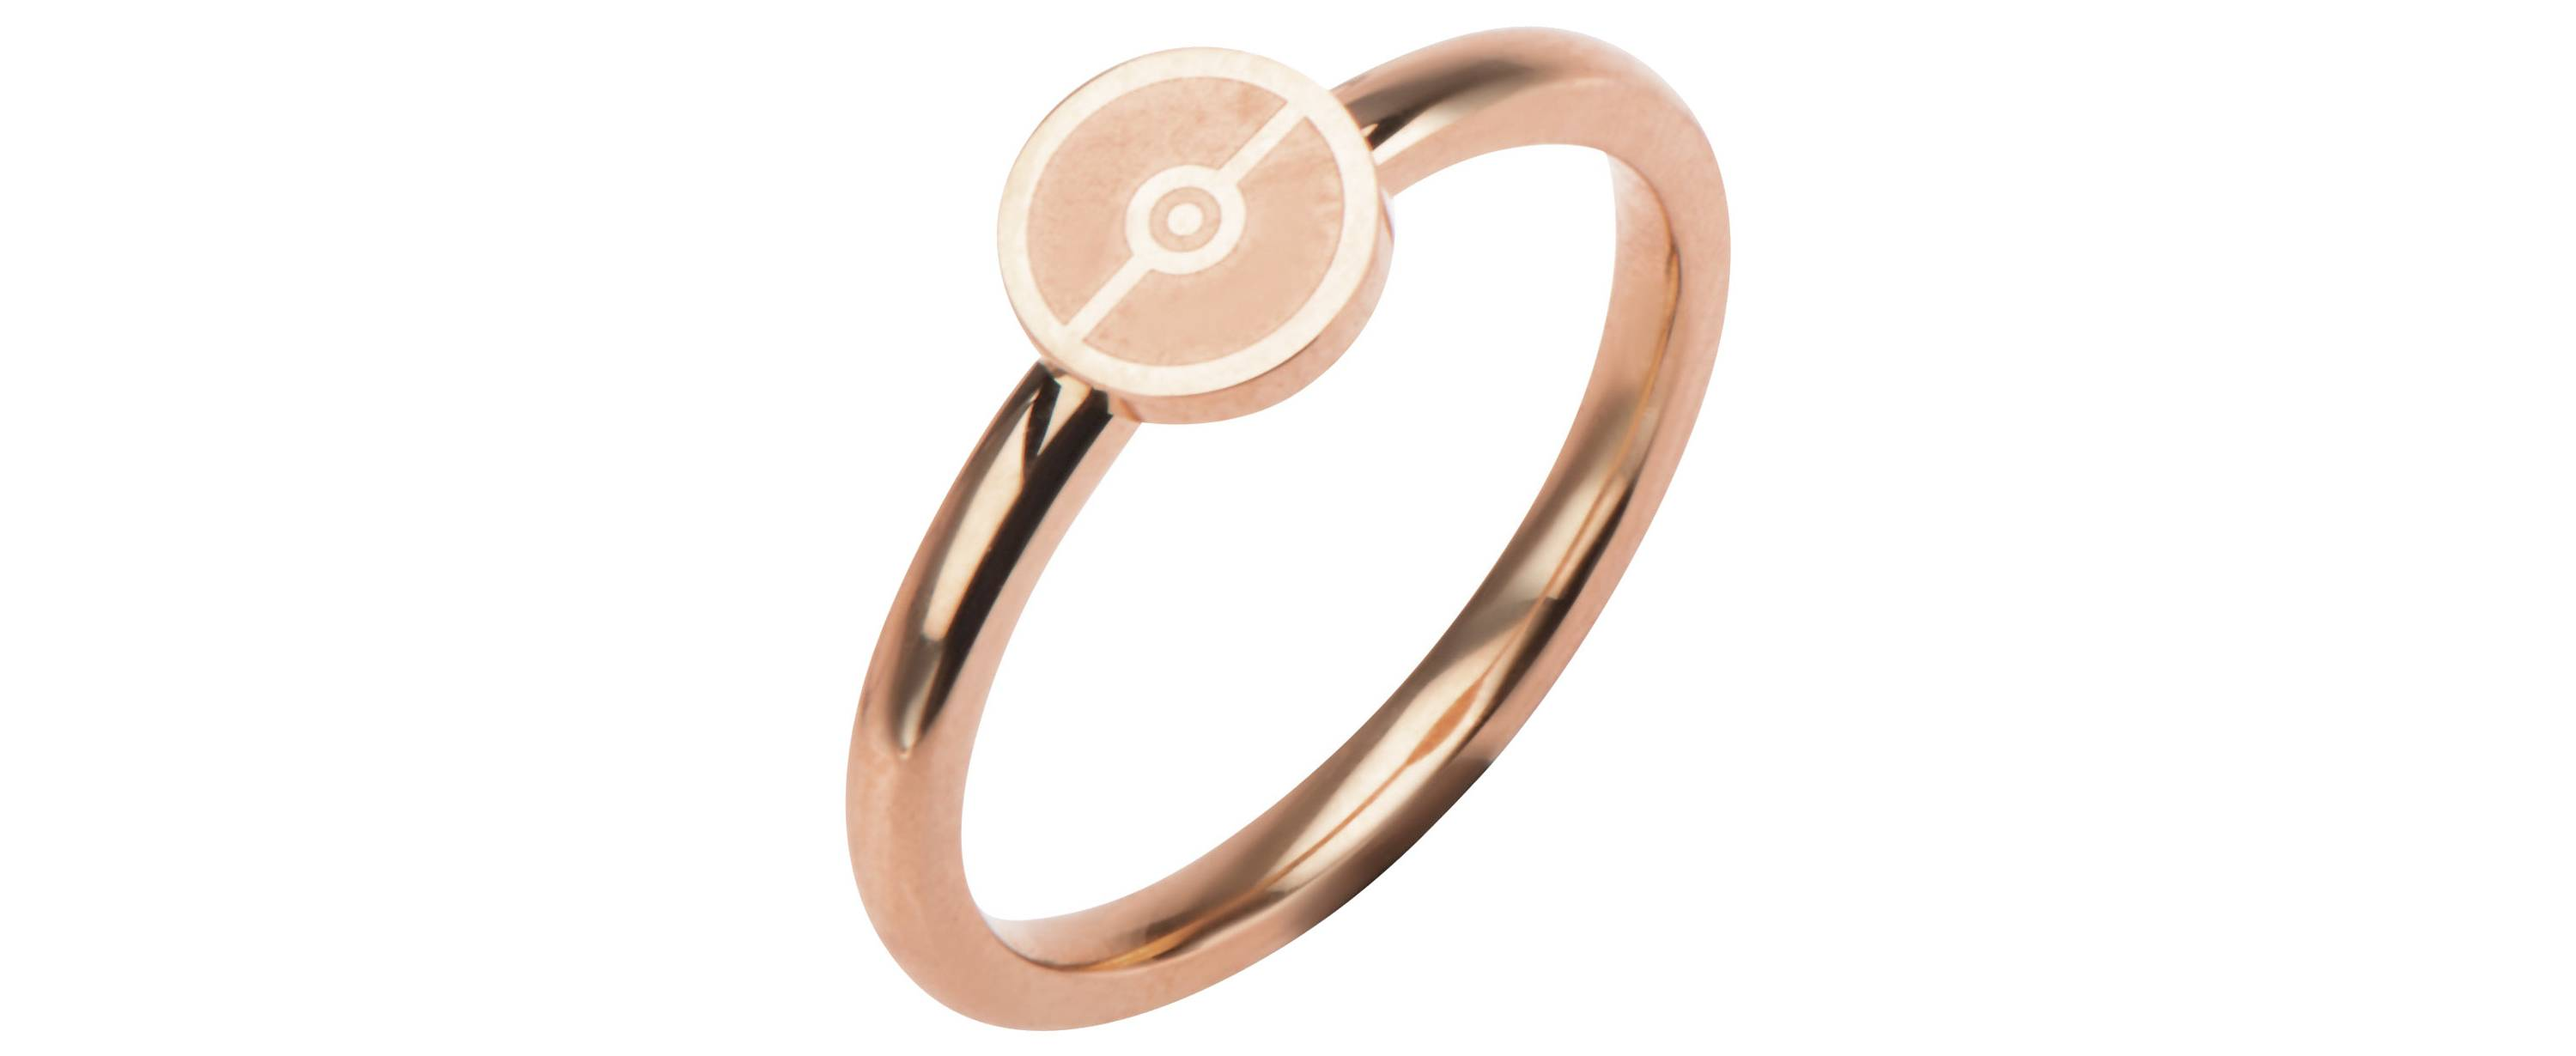 Pokeball Rose Gold-Plated Stainless Steel Ring - Size 8